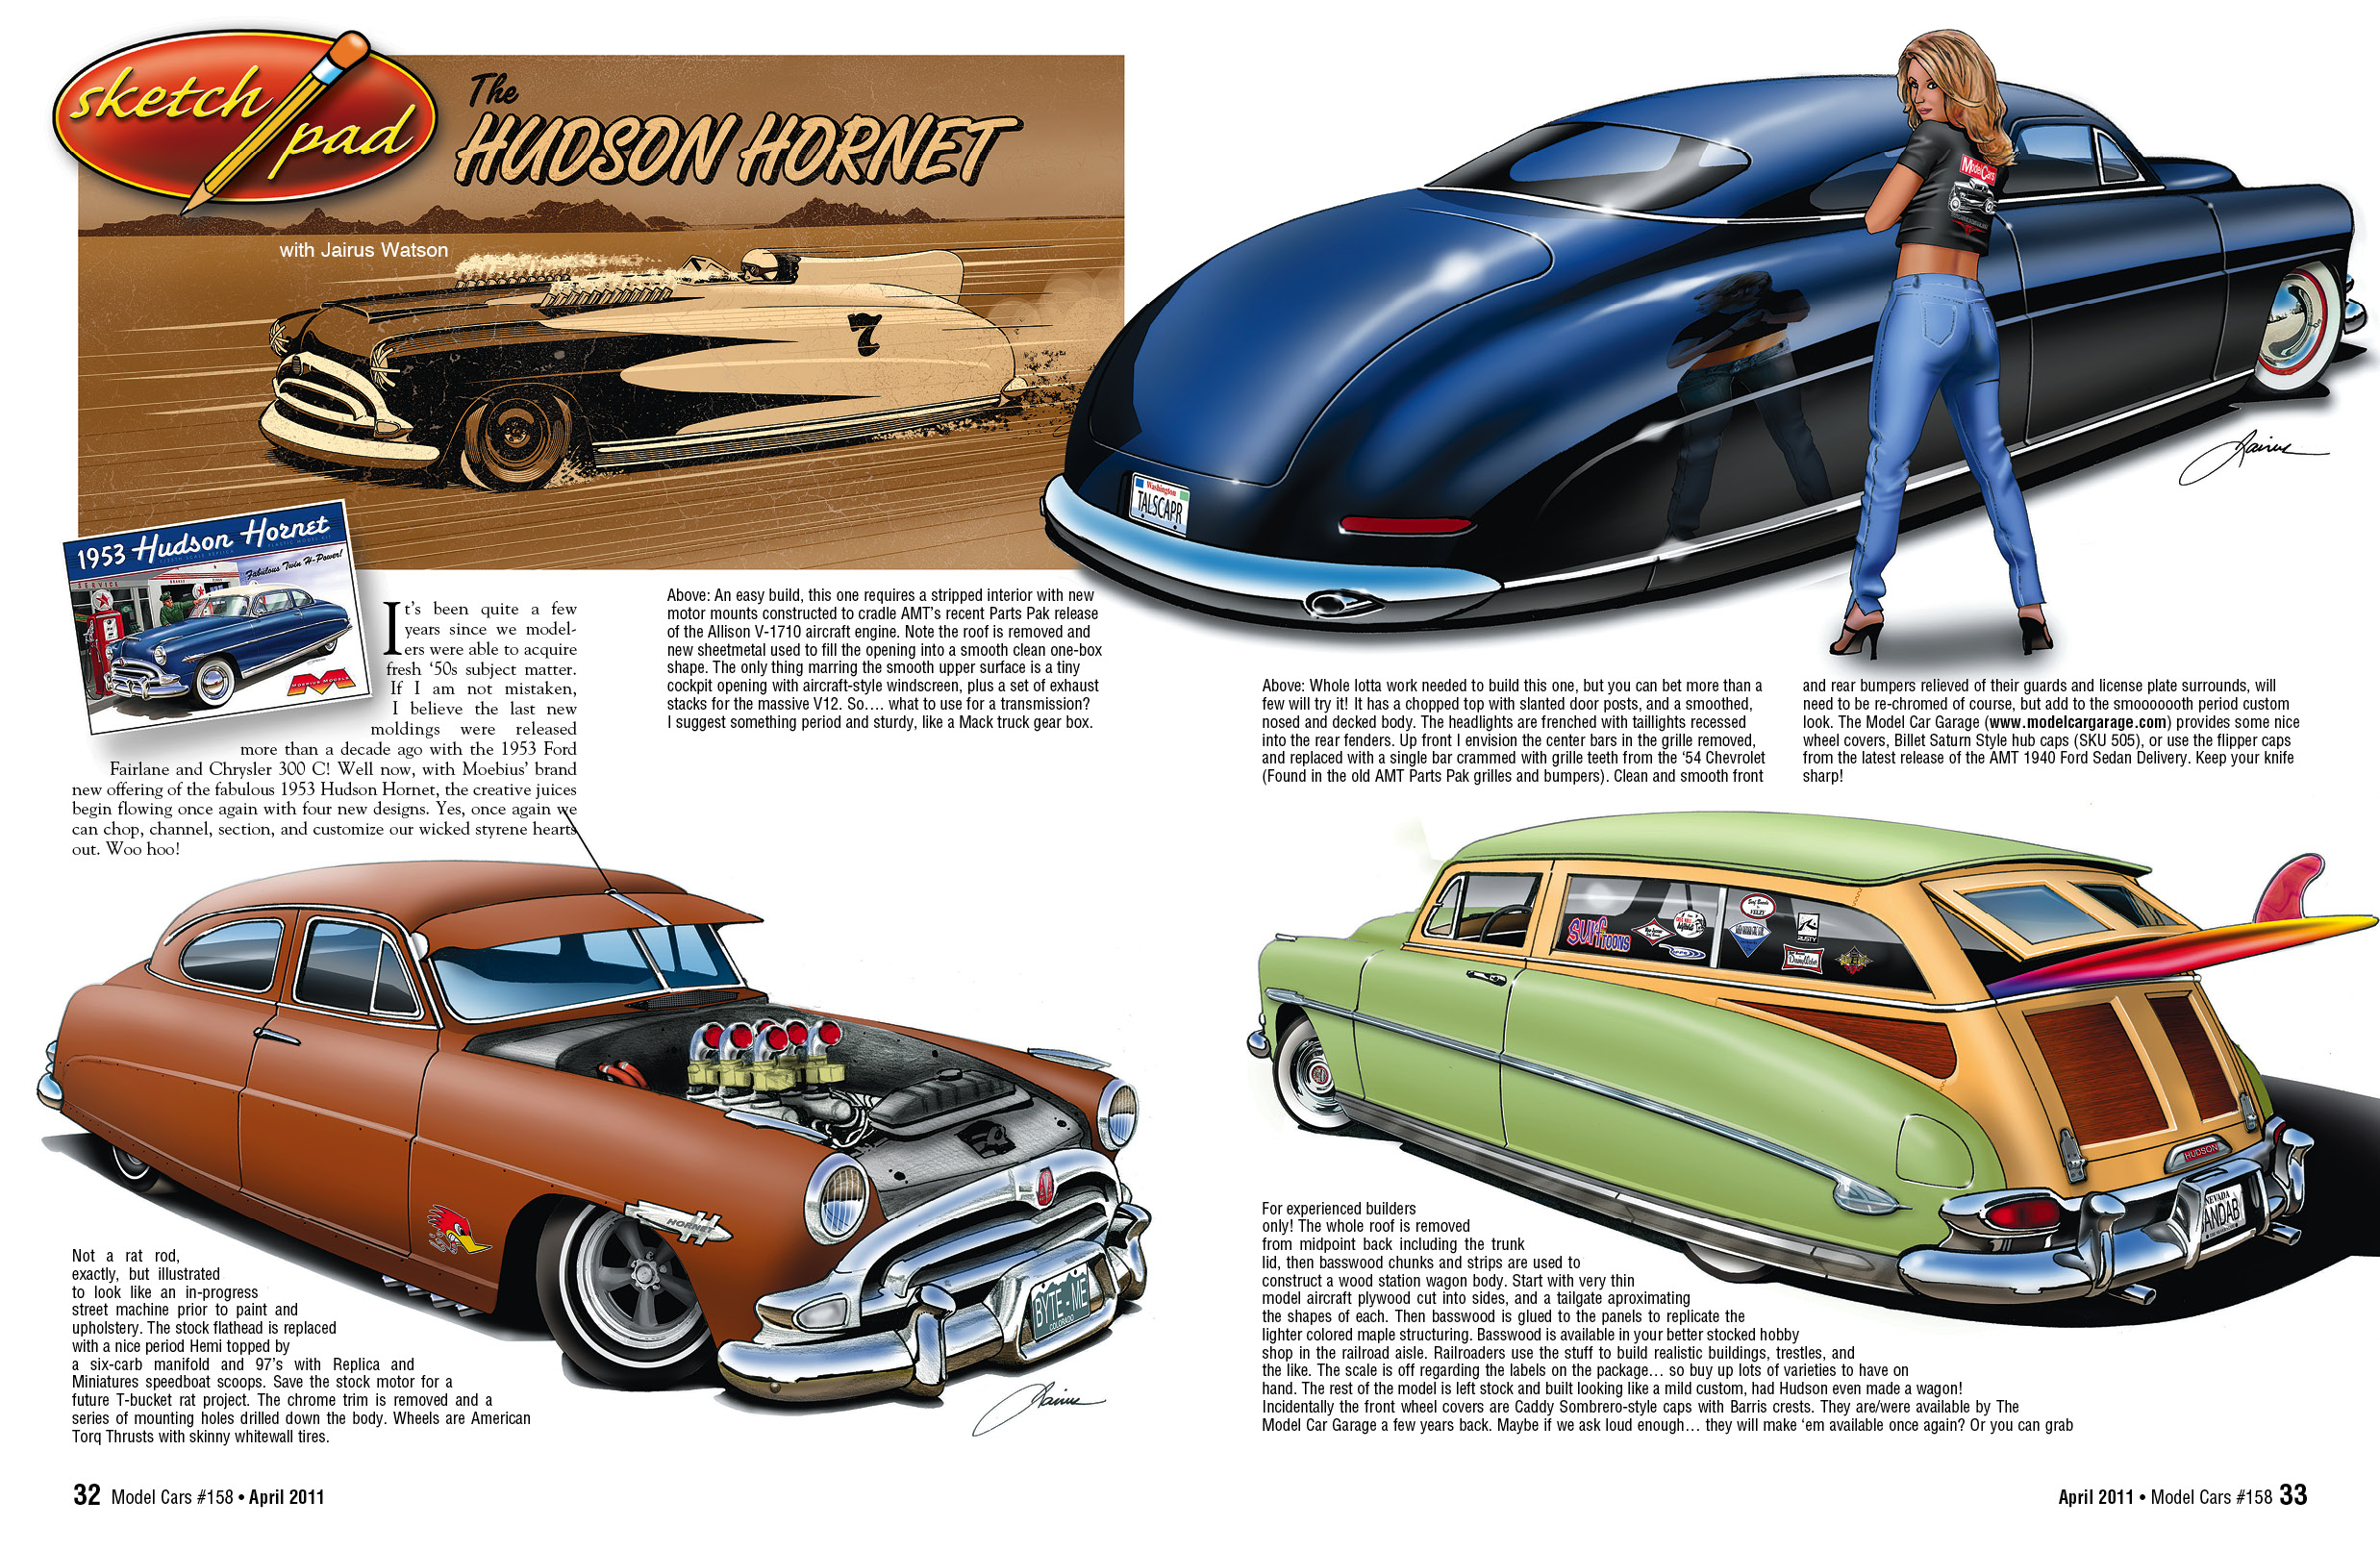 Sketchpad archives model cars magazine for Sketchpad com